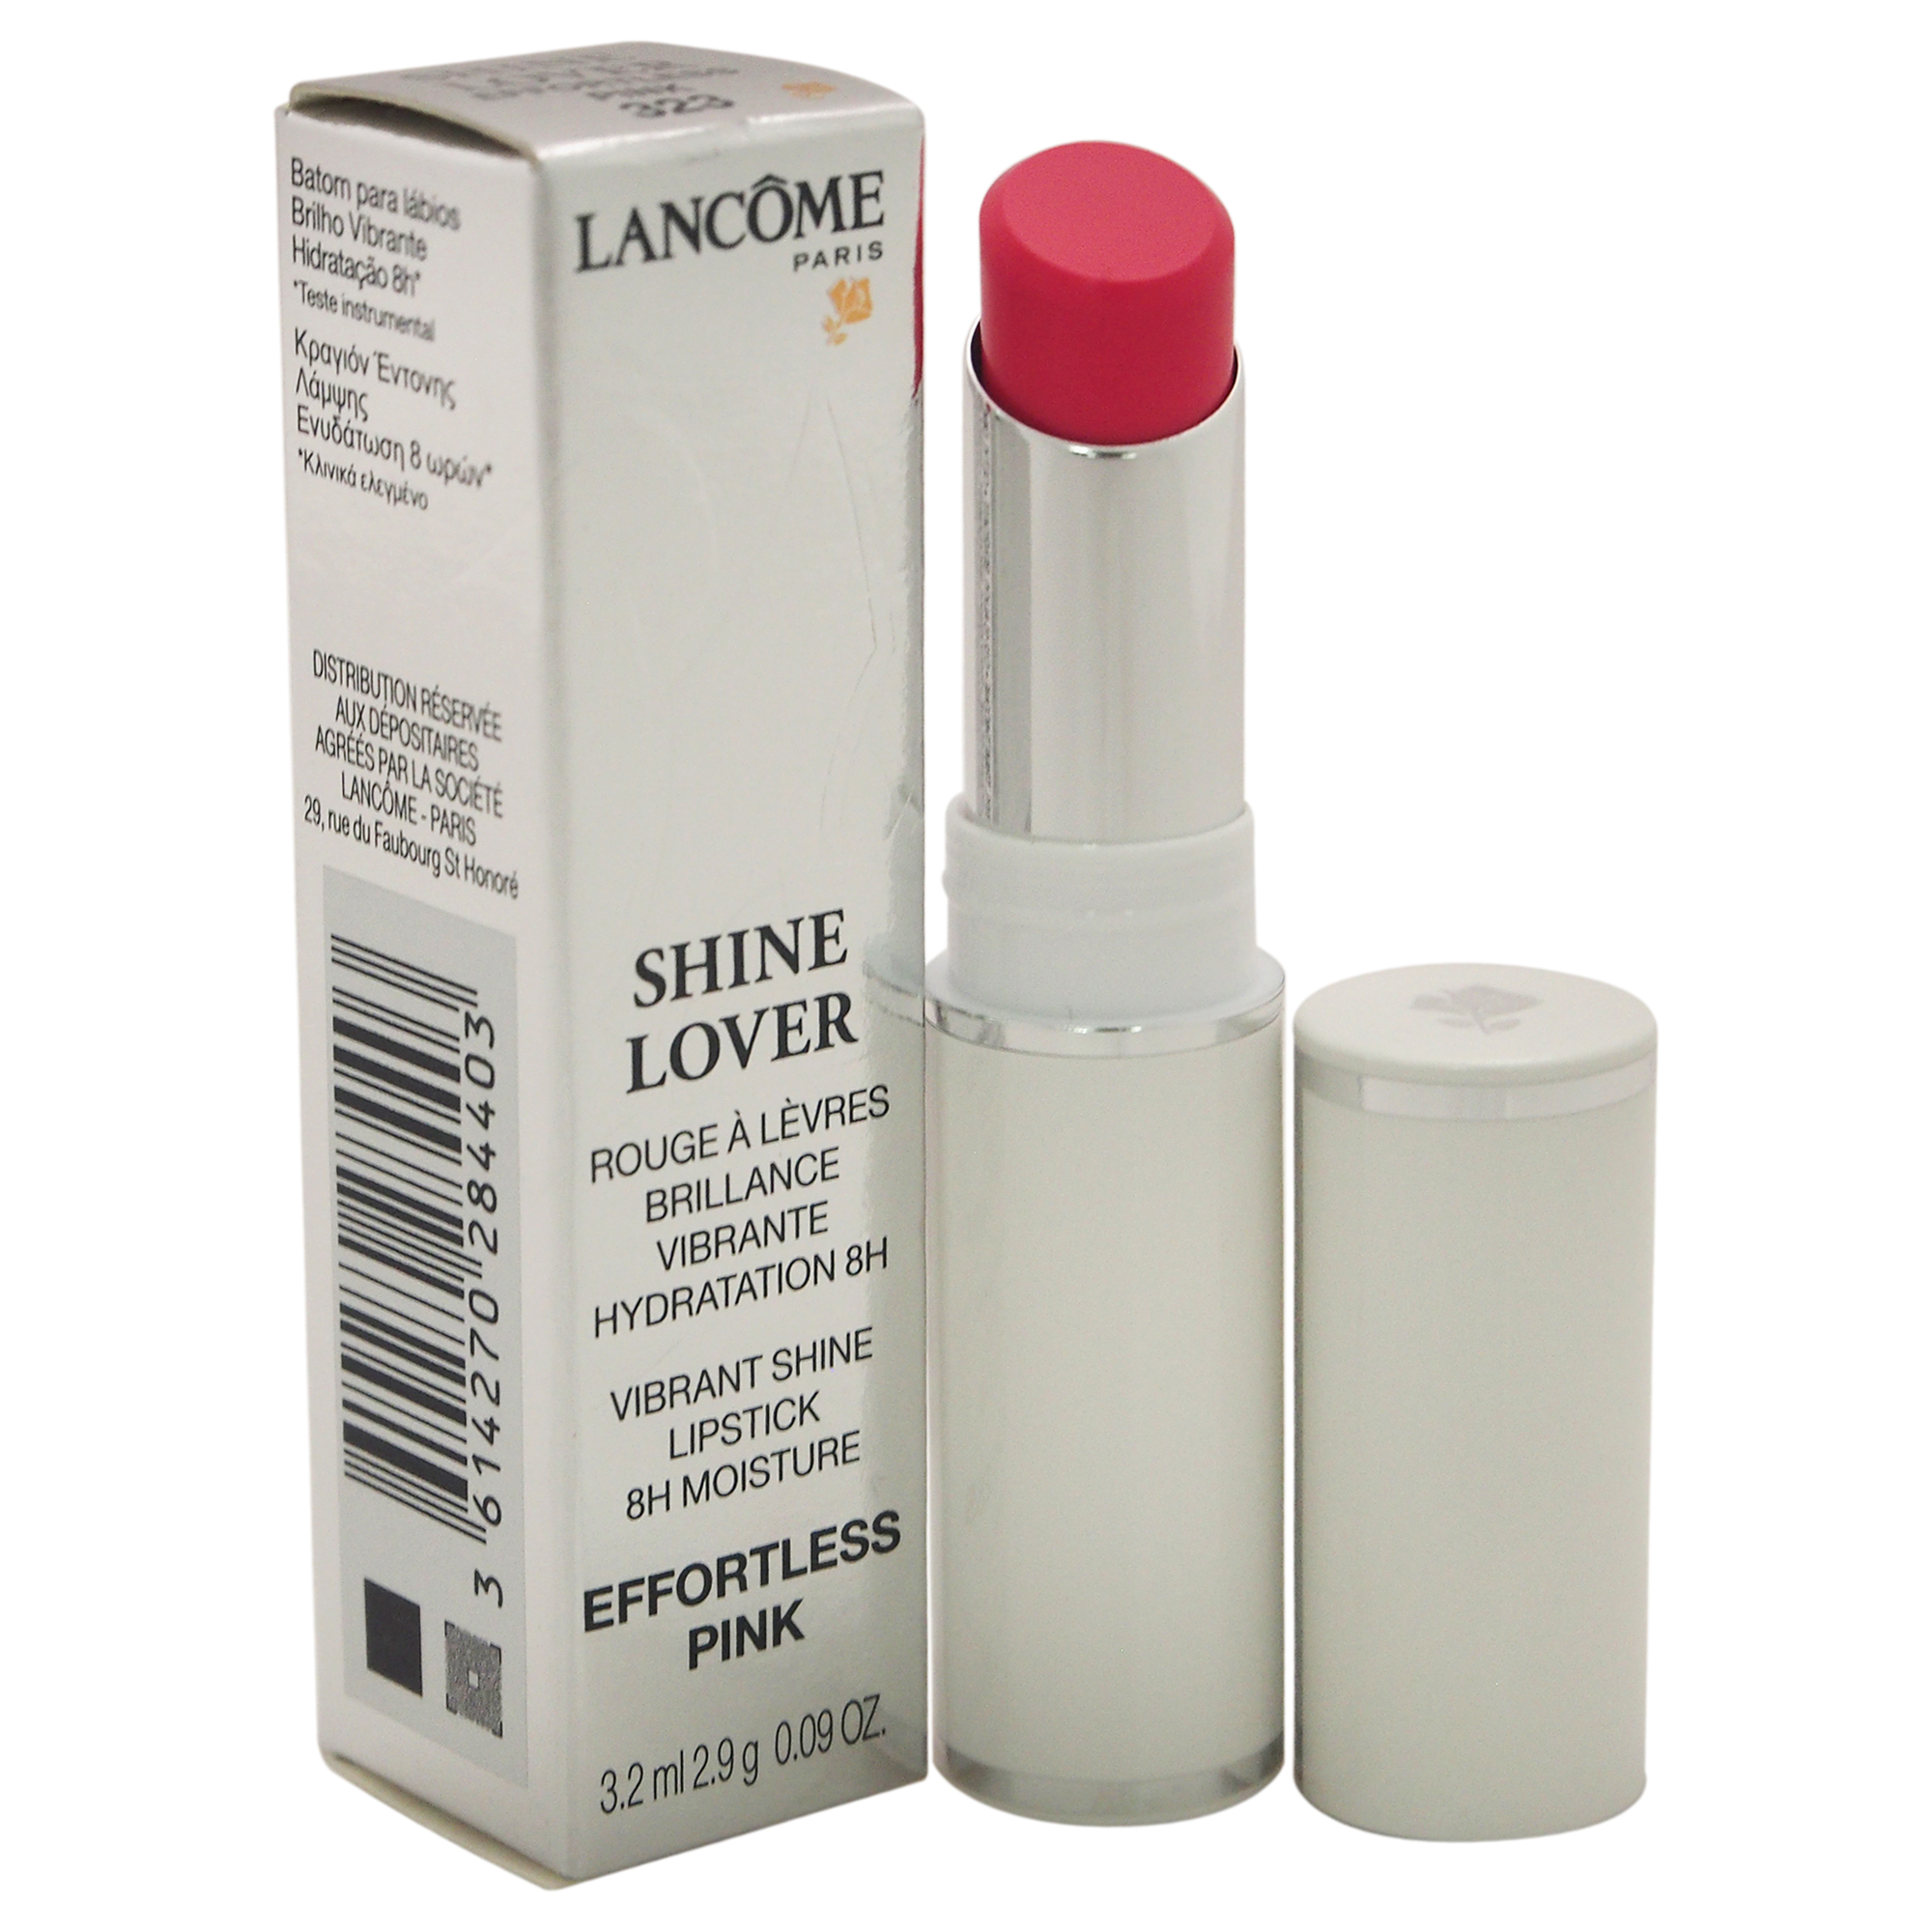 Shine Lover Vibrant Shine Lipstick - # 323 Effortless Pink by Lancome for Women - 0.09 oz Lipstick